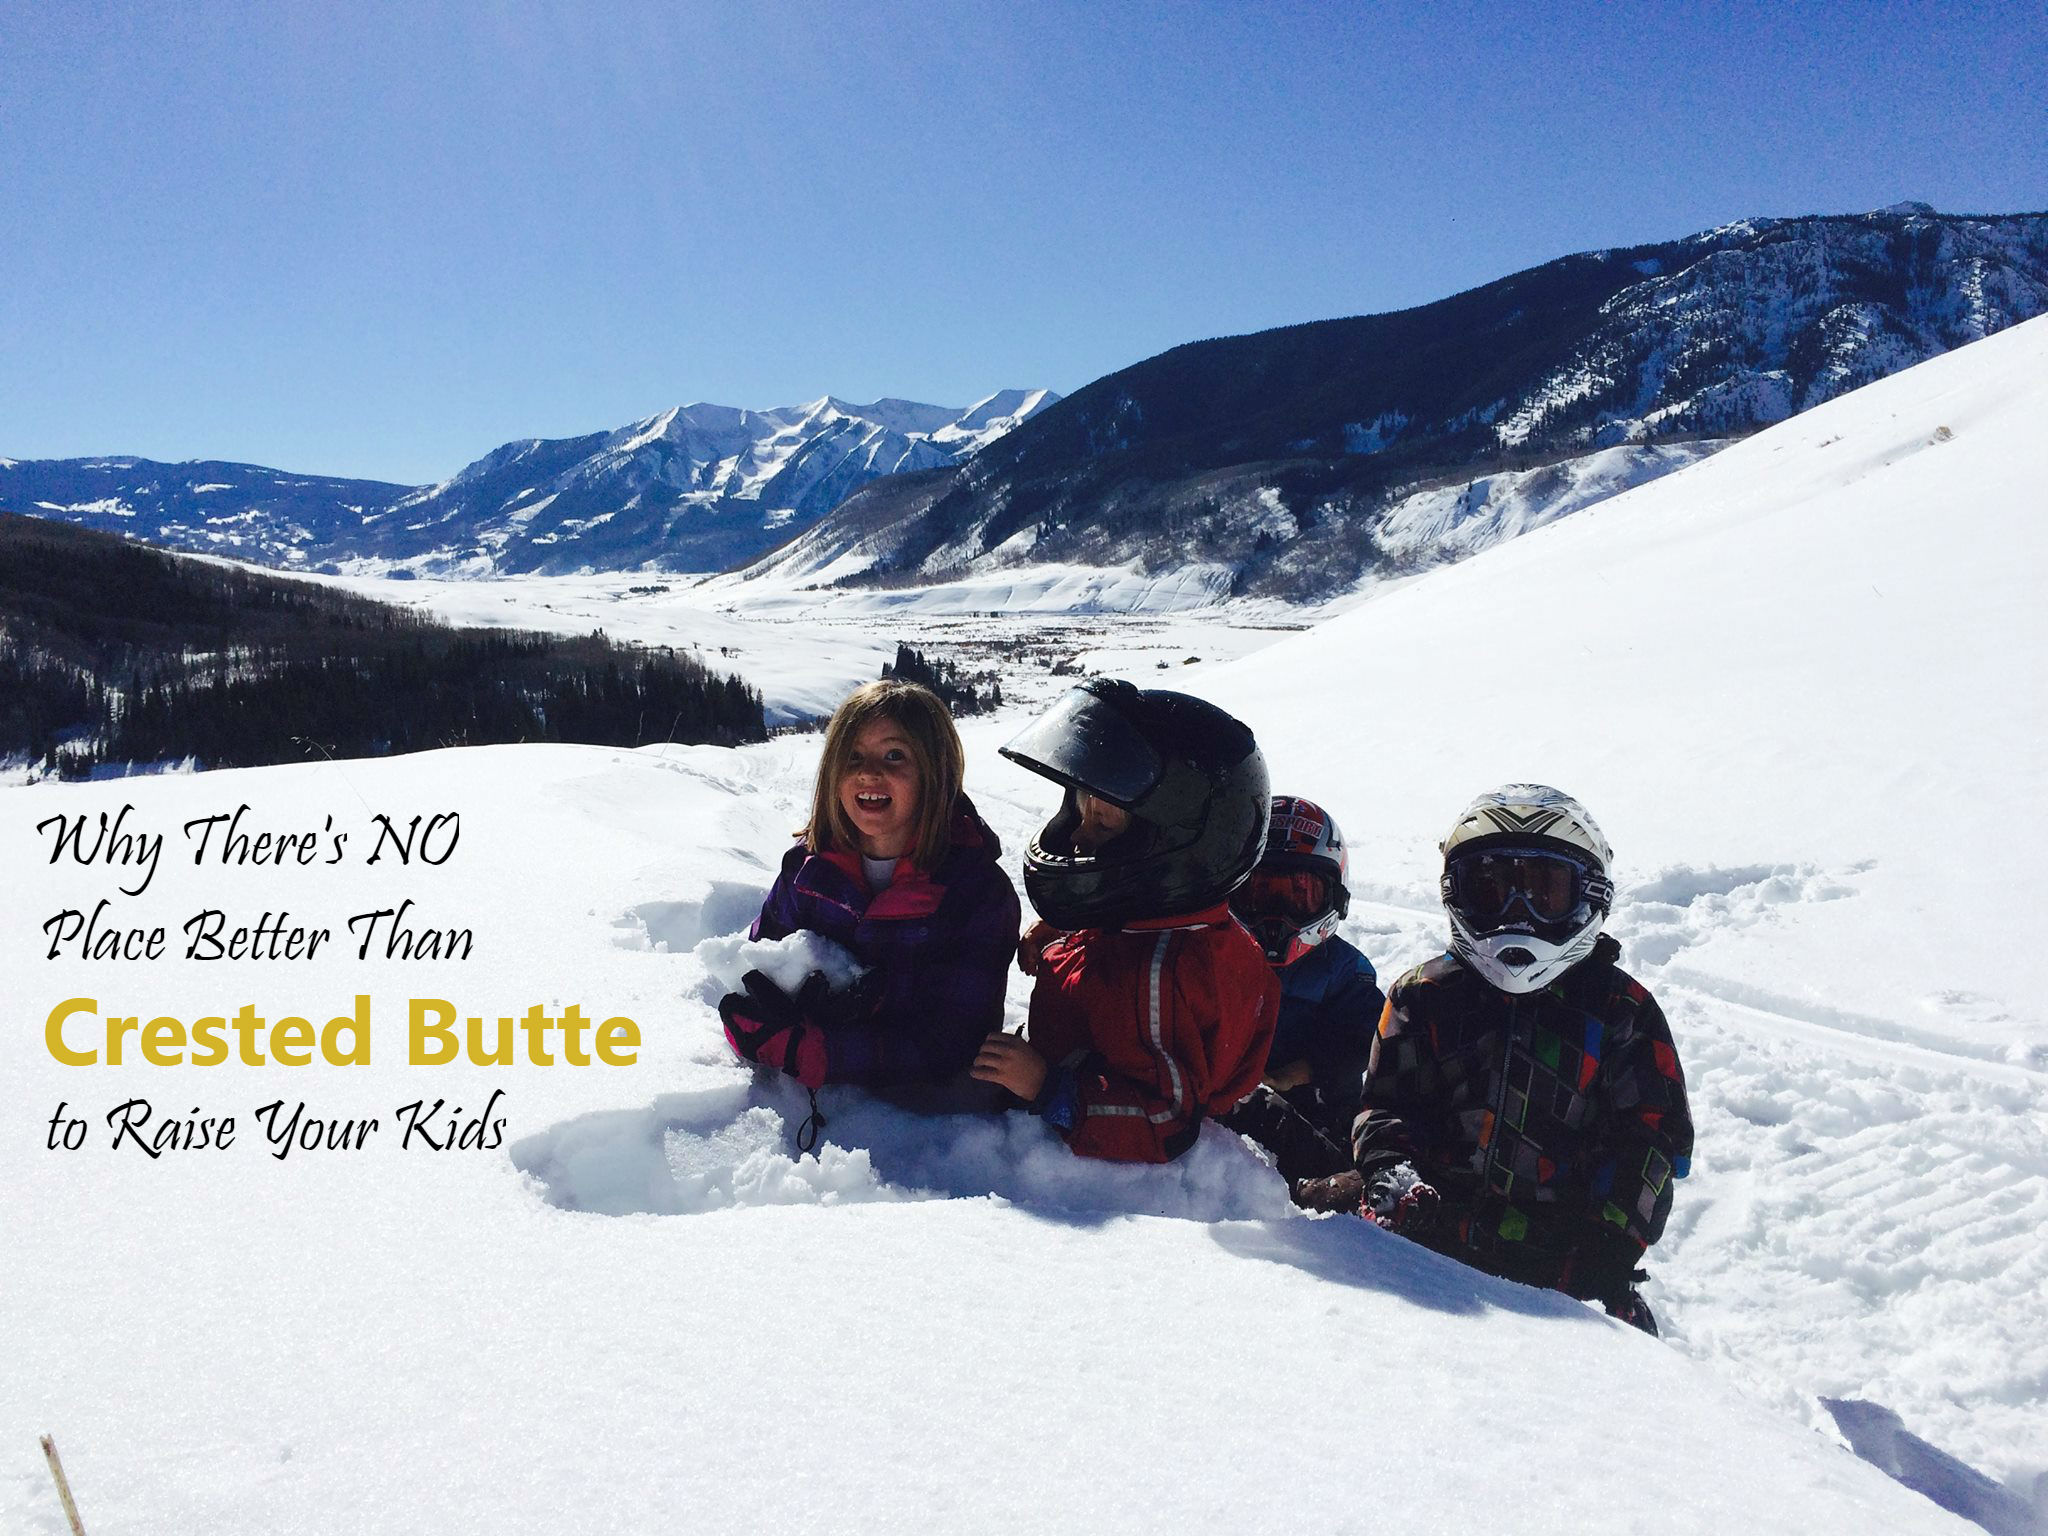 Snowmobiling-with-kids-Crested-Butte-with-title-1